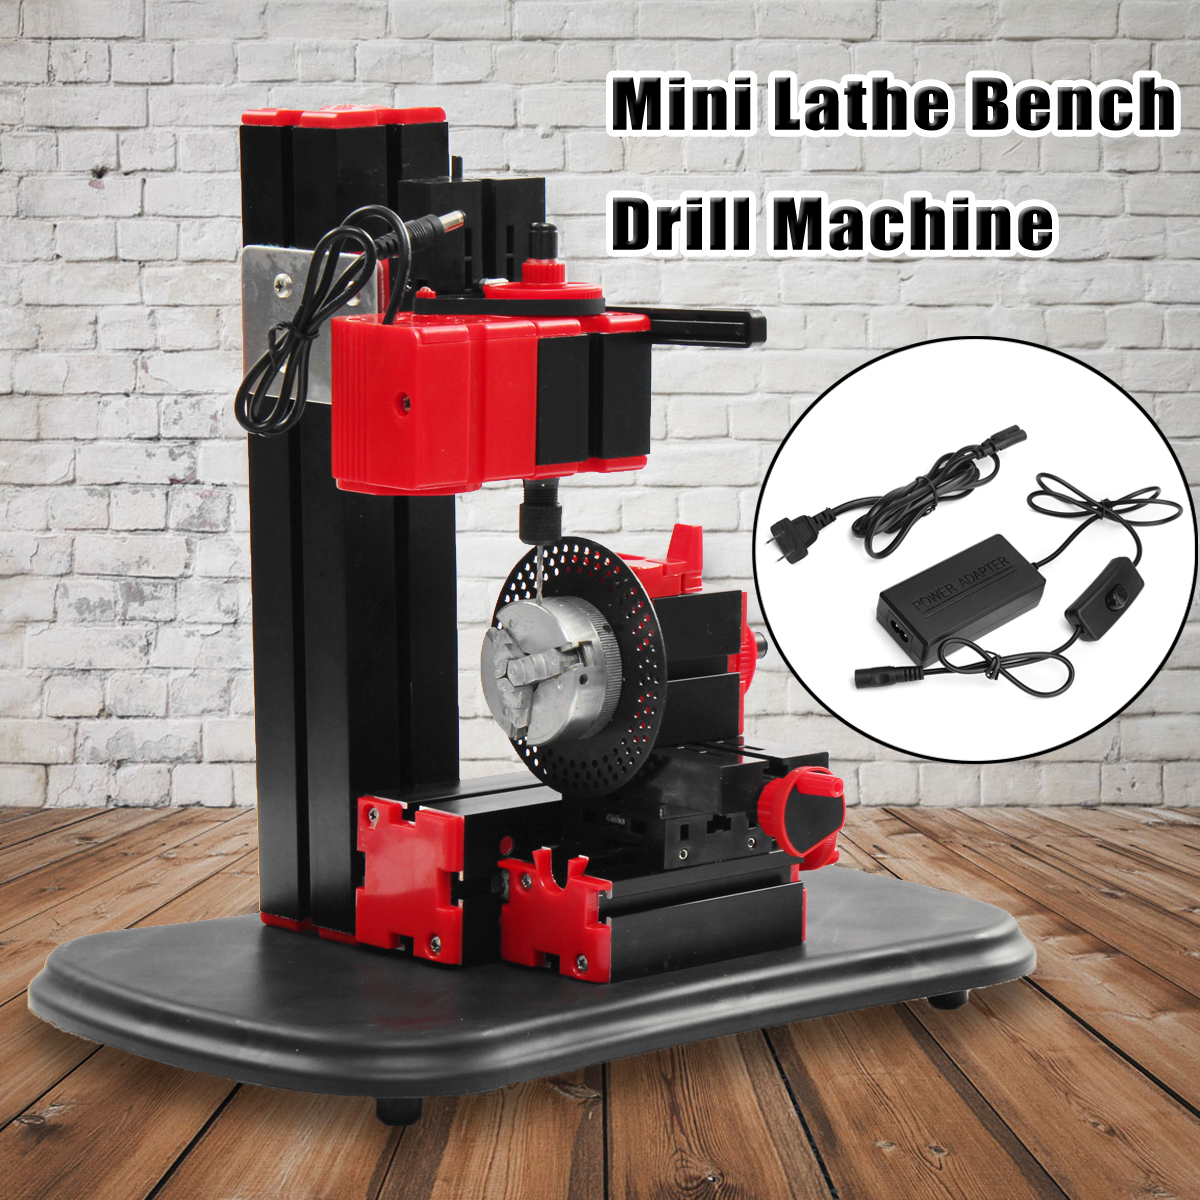 110V-240V Mini Lathe Bench Drill Machine DIY Electric Drill Woodwork Model Making Tool Lathe Milling Machine Kit 1pcs multifunctional mini bench lathe machine electric grinder polisher drill saw tool 350w 10000 r min